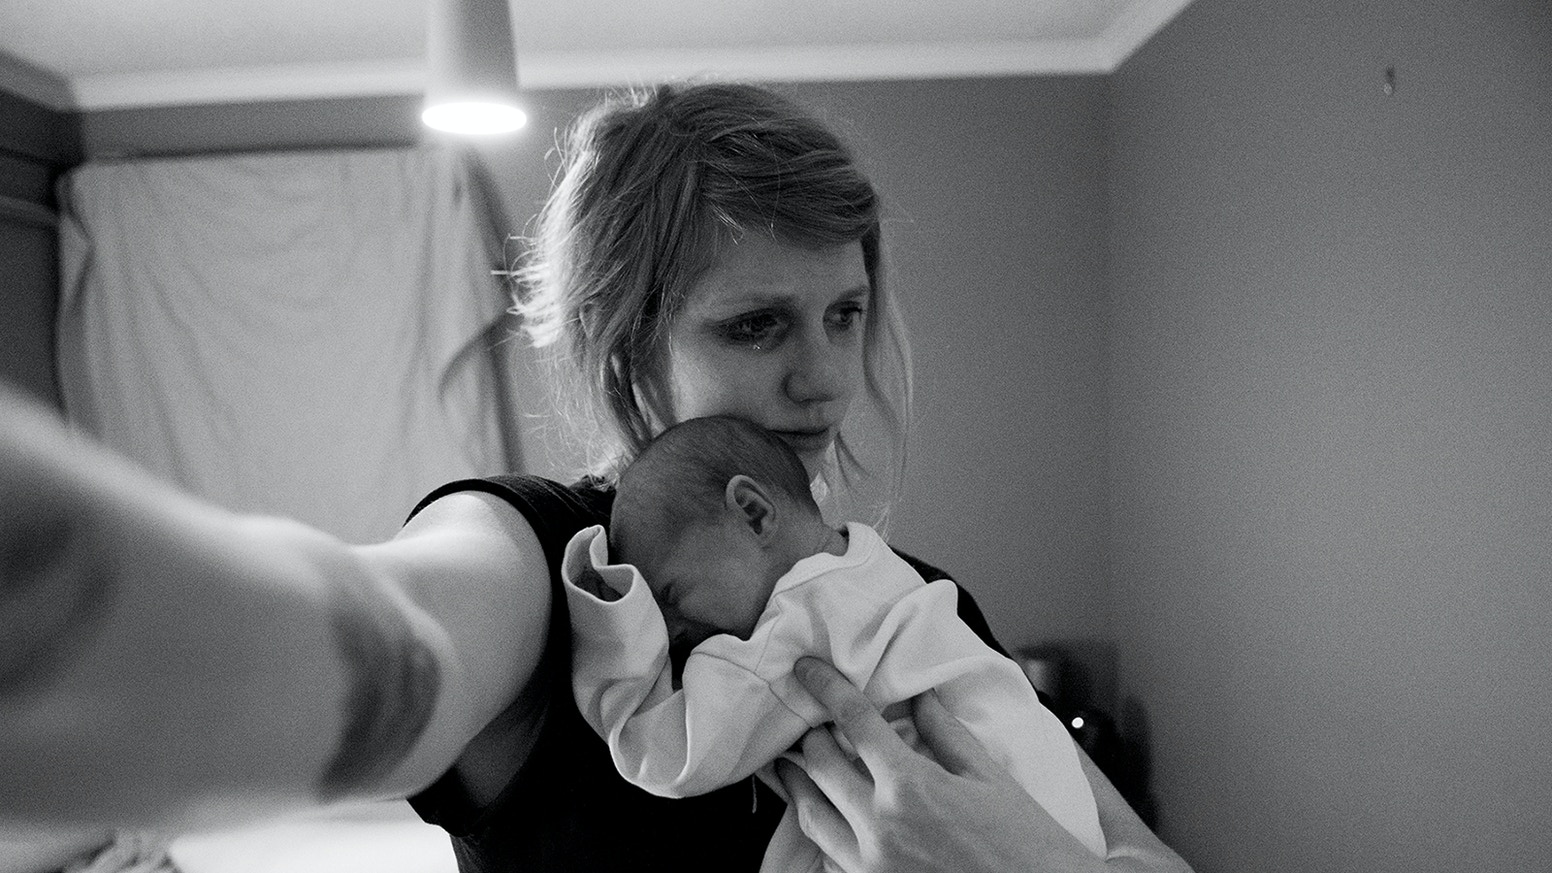 Born is a photobook with an honest, intimate look at the transition of becoming a mother.